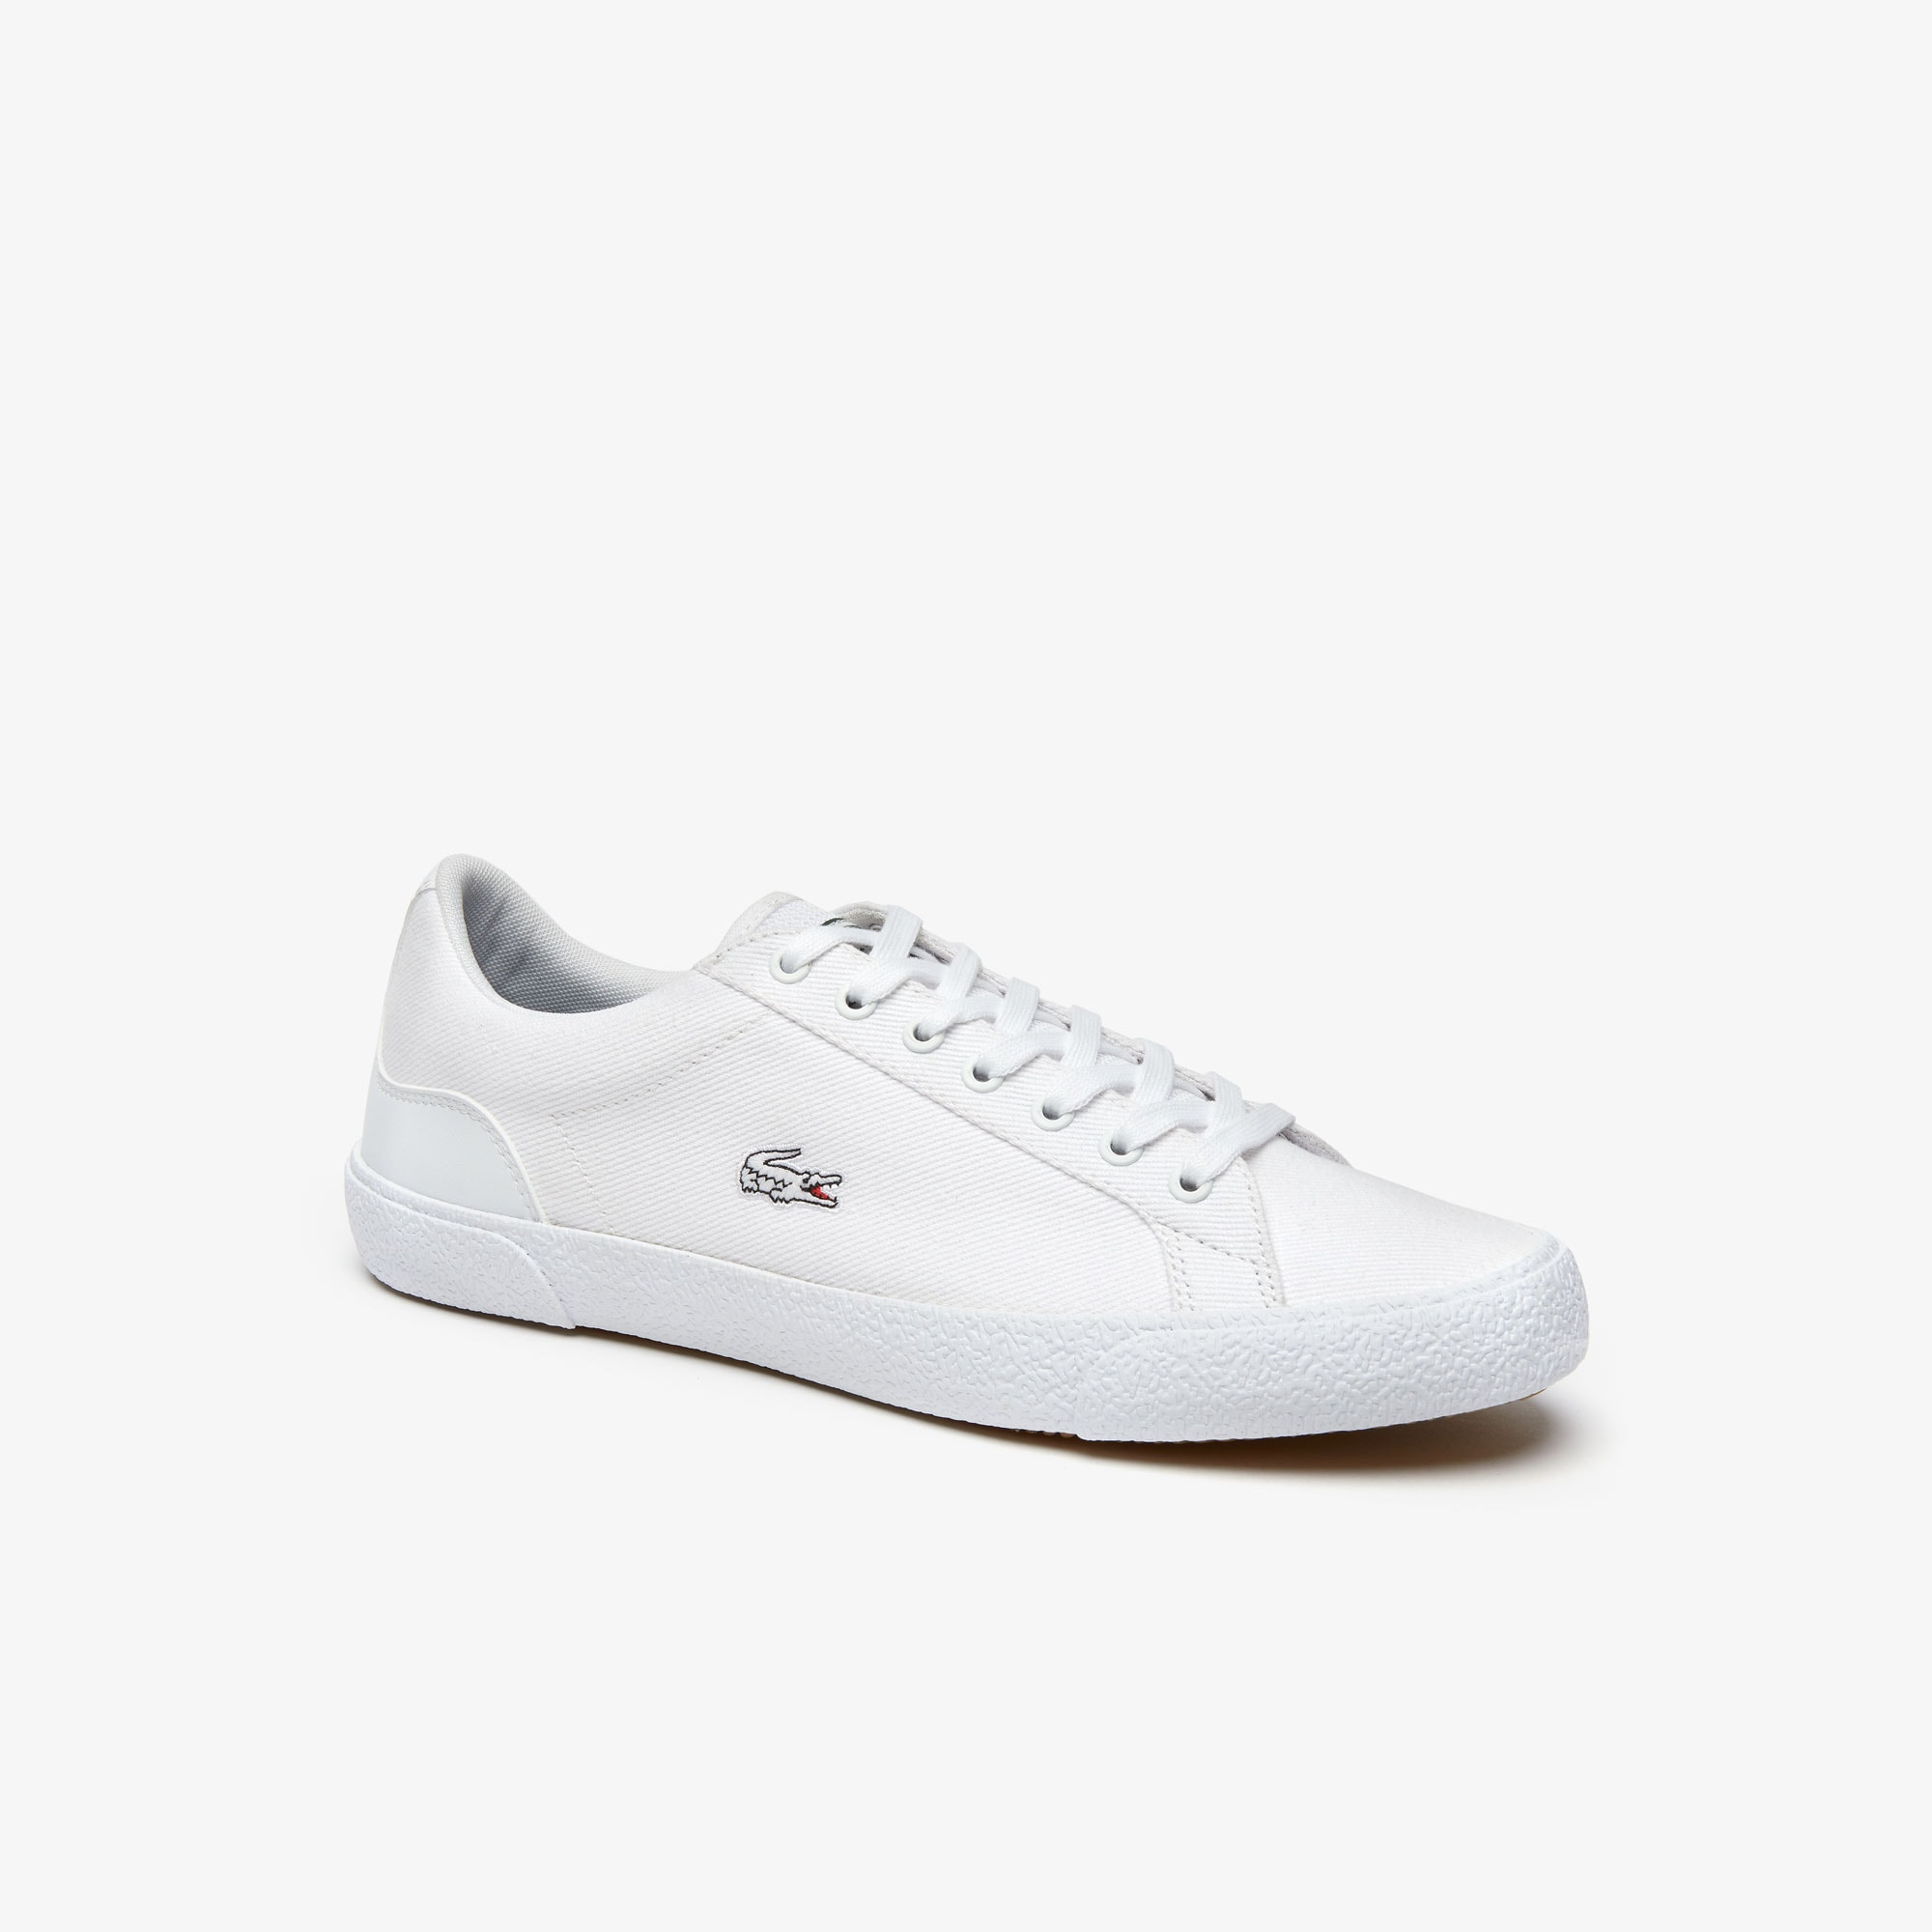 Lacoste Sneakers Men's Lerond Canvas Sneakers